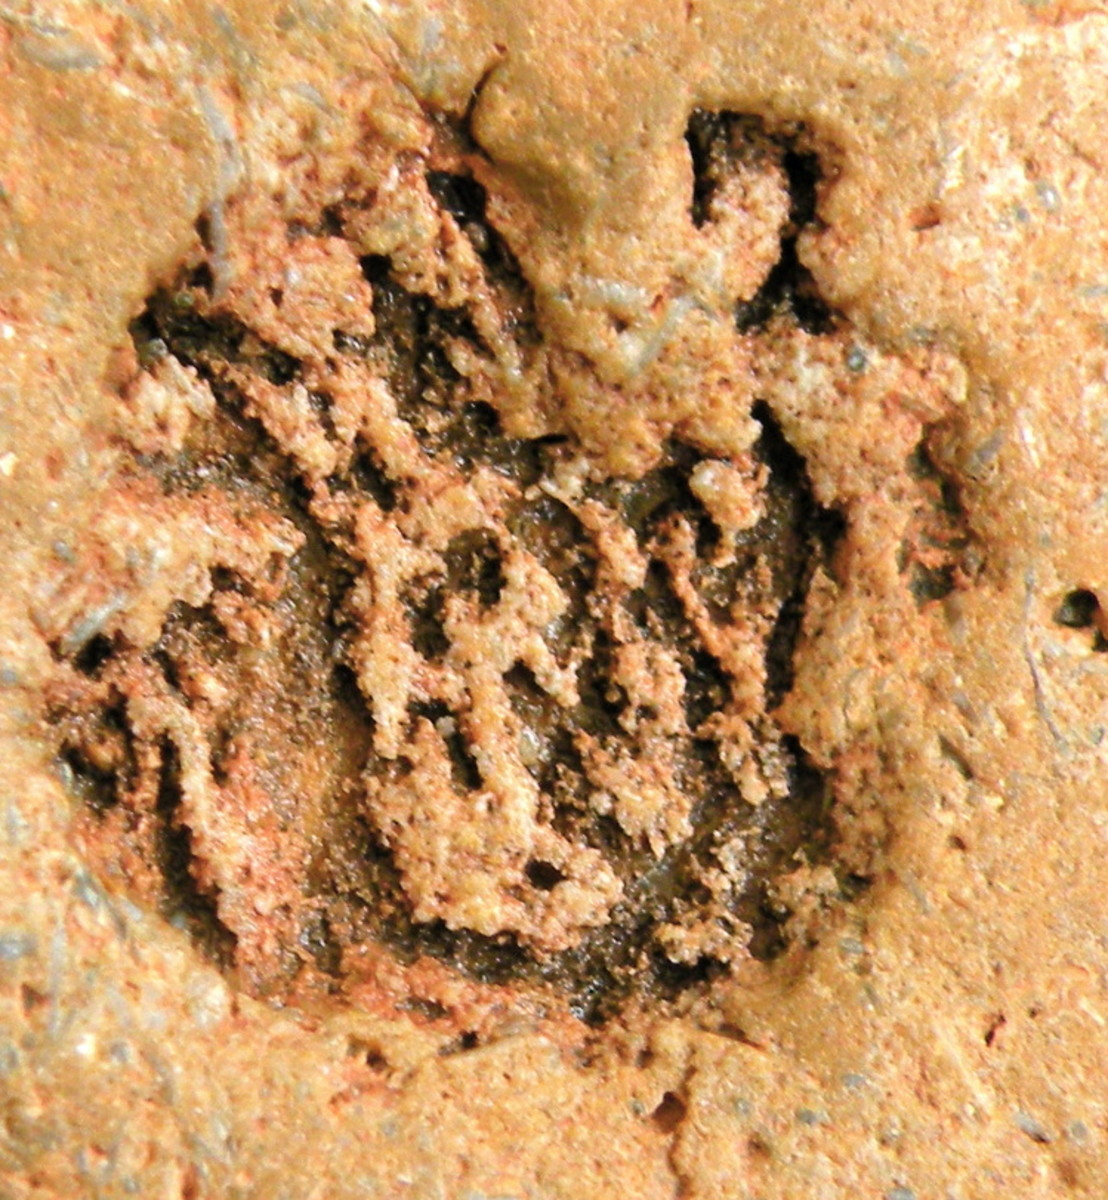 This is a closeup of the impression on the back of the face fossil rock. Found Feb. 2011 by S. Henkel at Imperial Dam Recreation Area on the California/Arizona border.